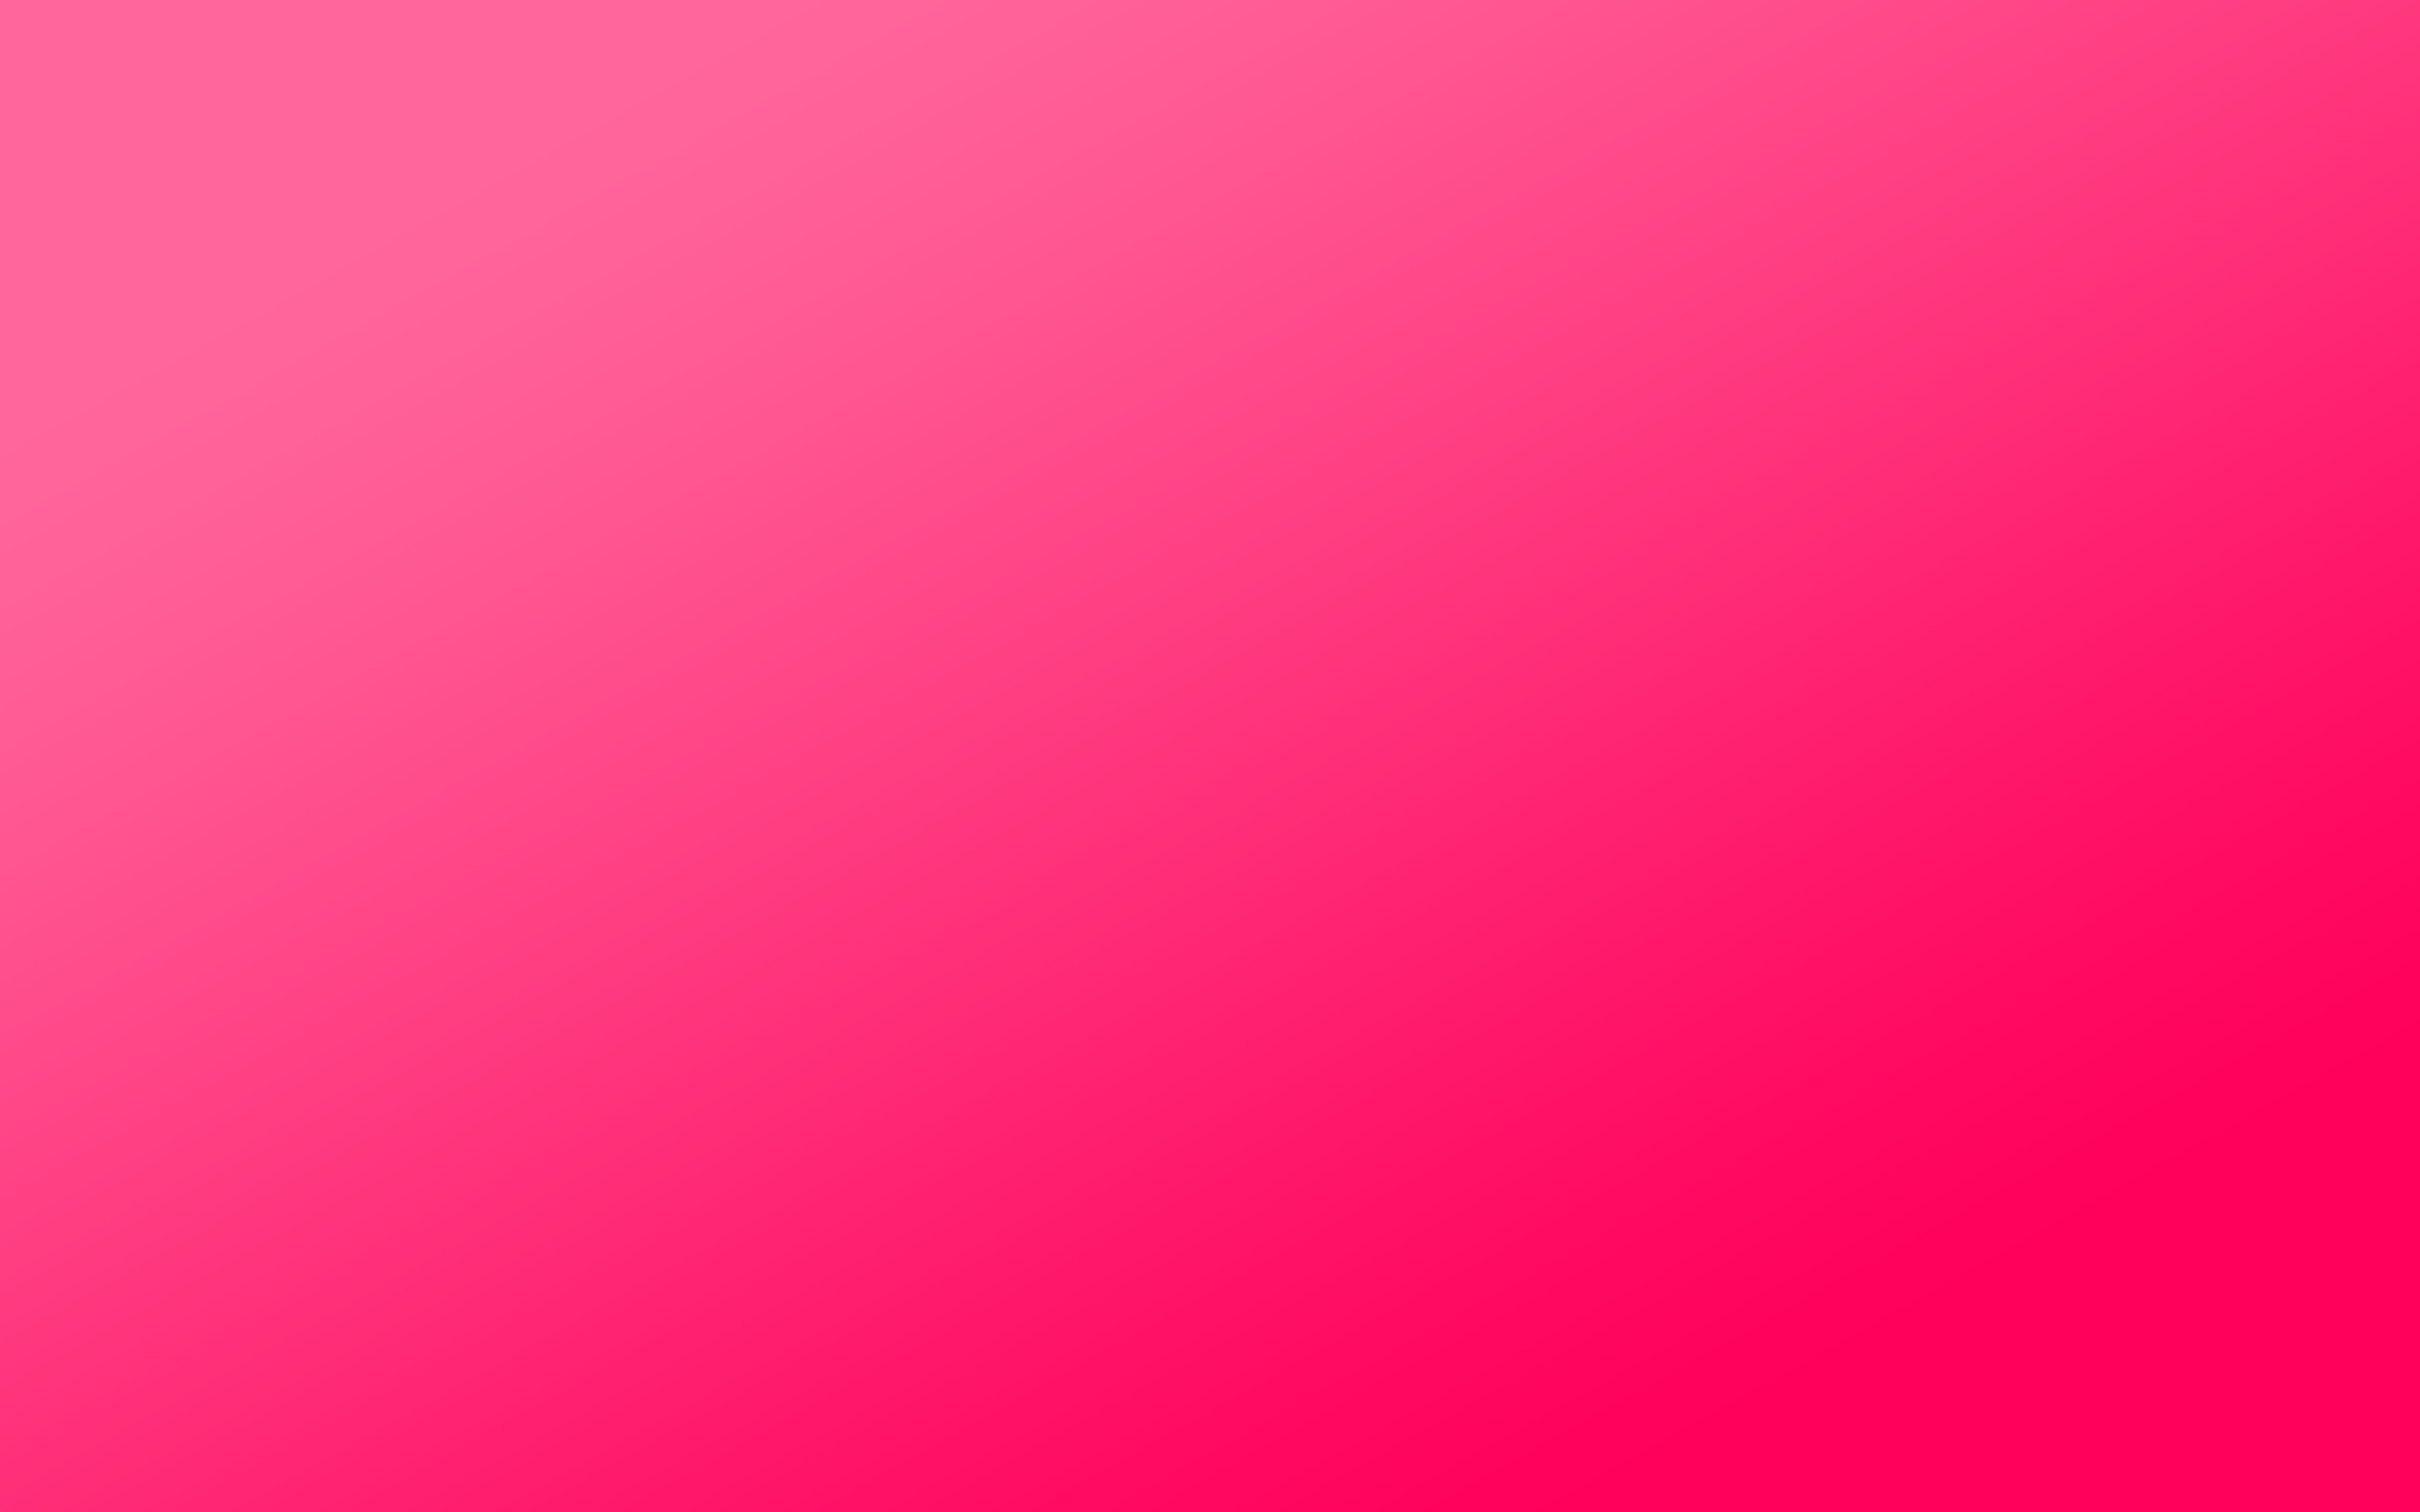 2560x1600 Hot Pink Hd Wallpapers